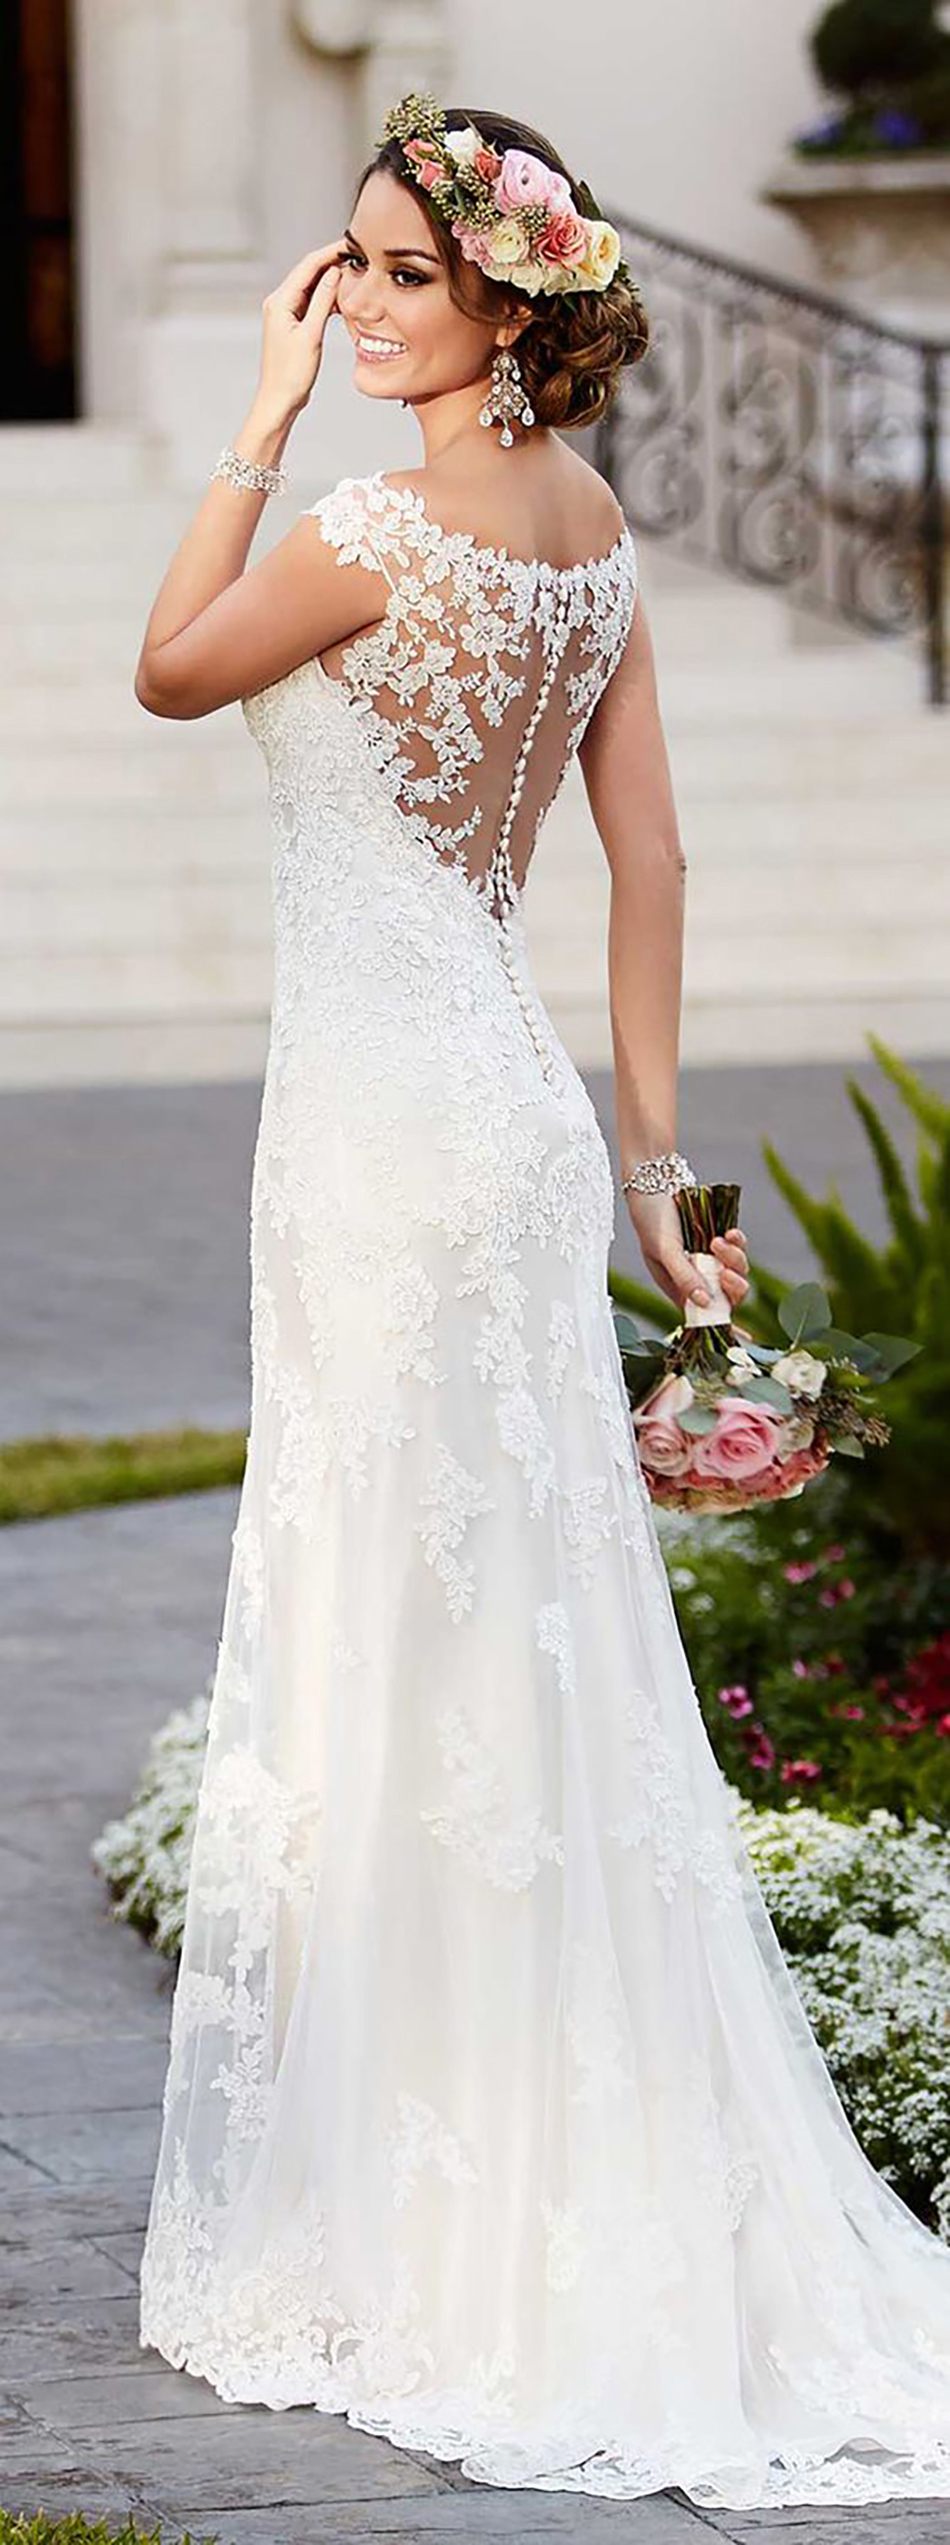 Most Por Wedding Dresses Pinterest